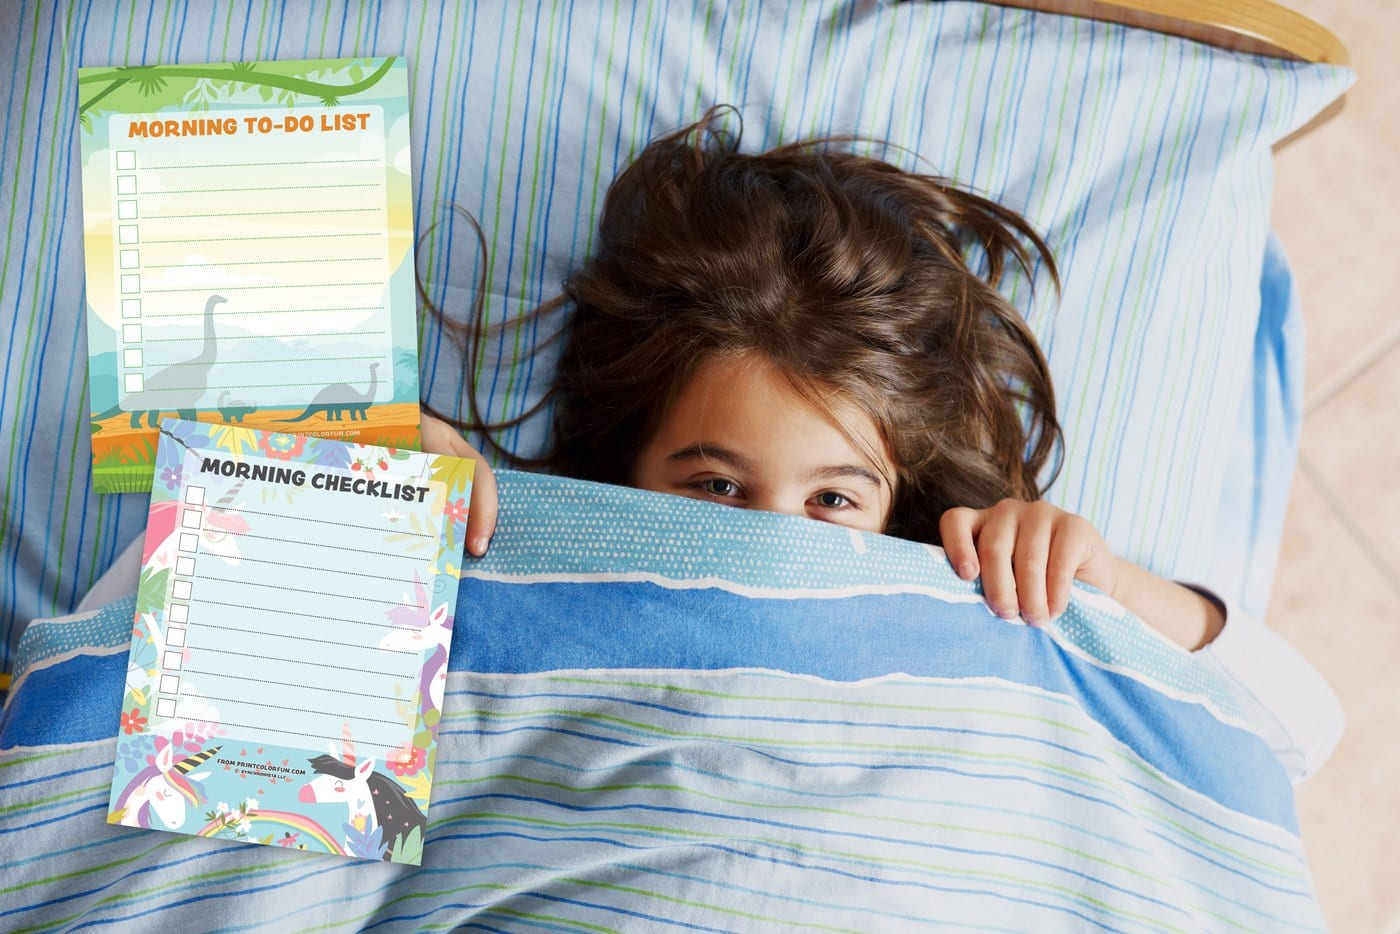 Great ways to wake up kids in a positive way and printable morning checklists